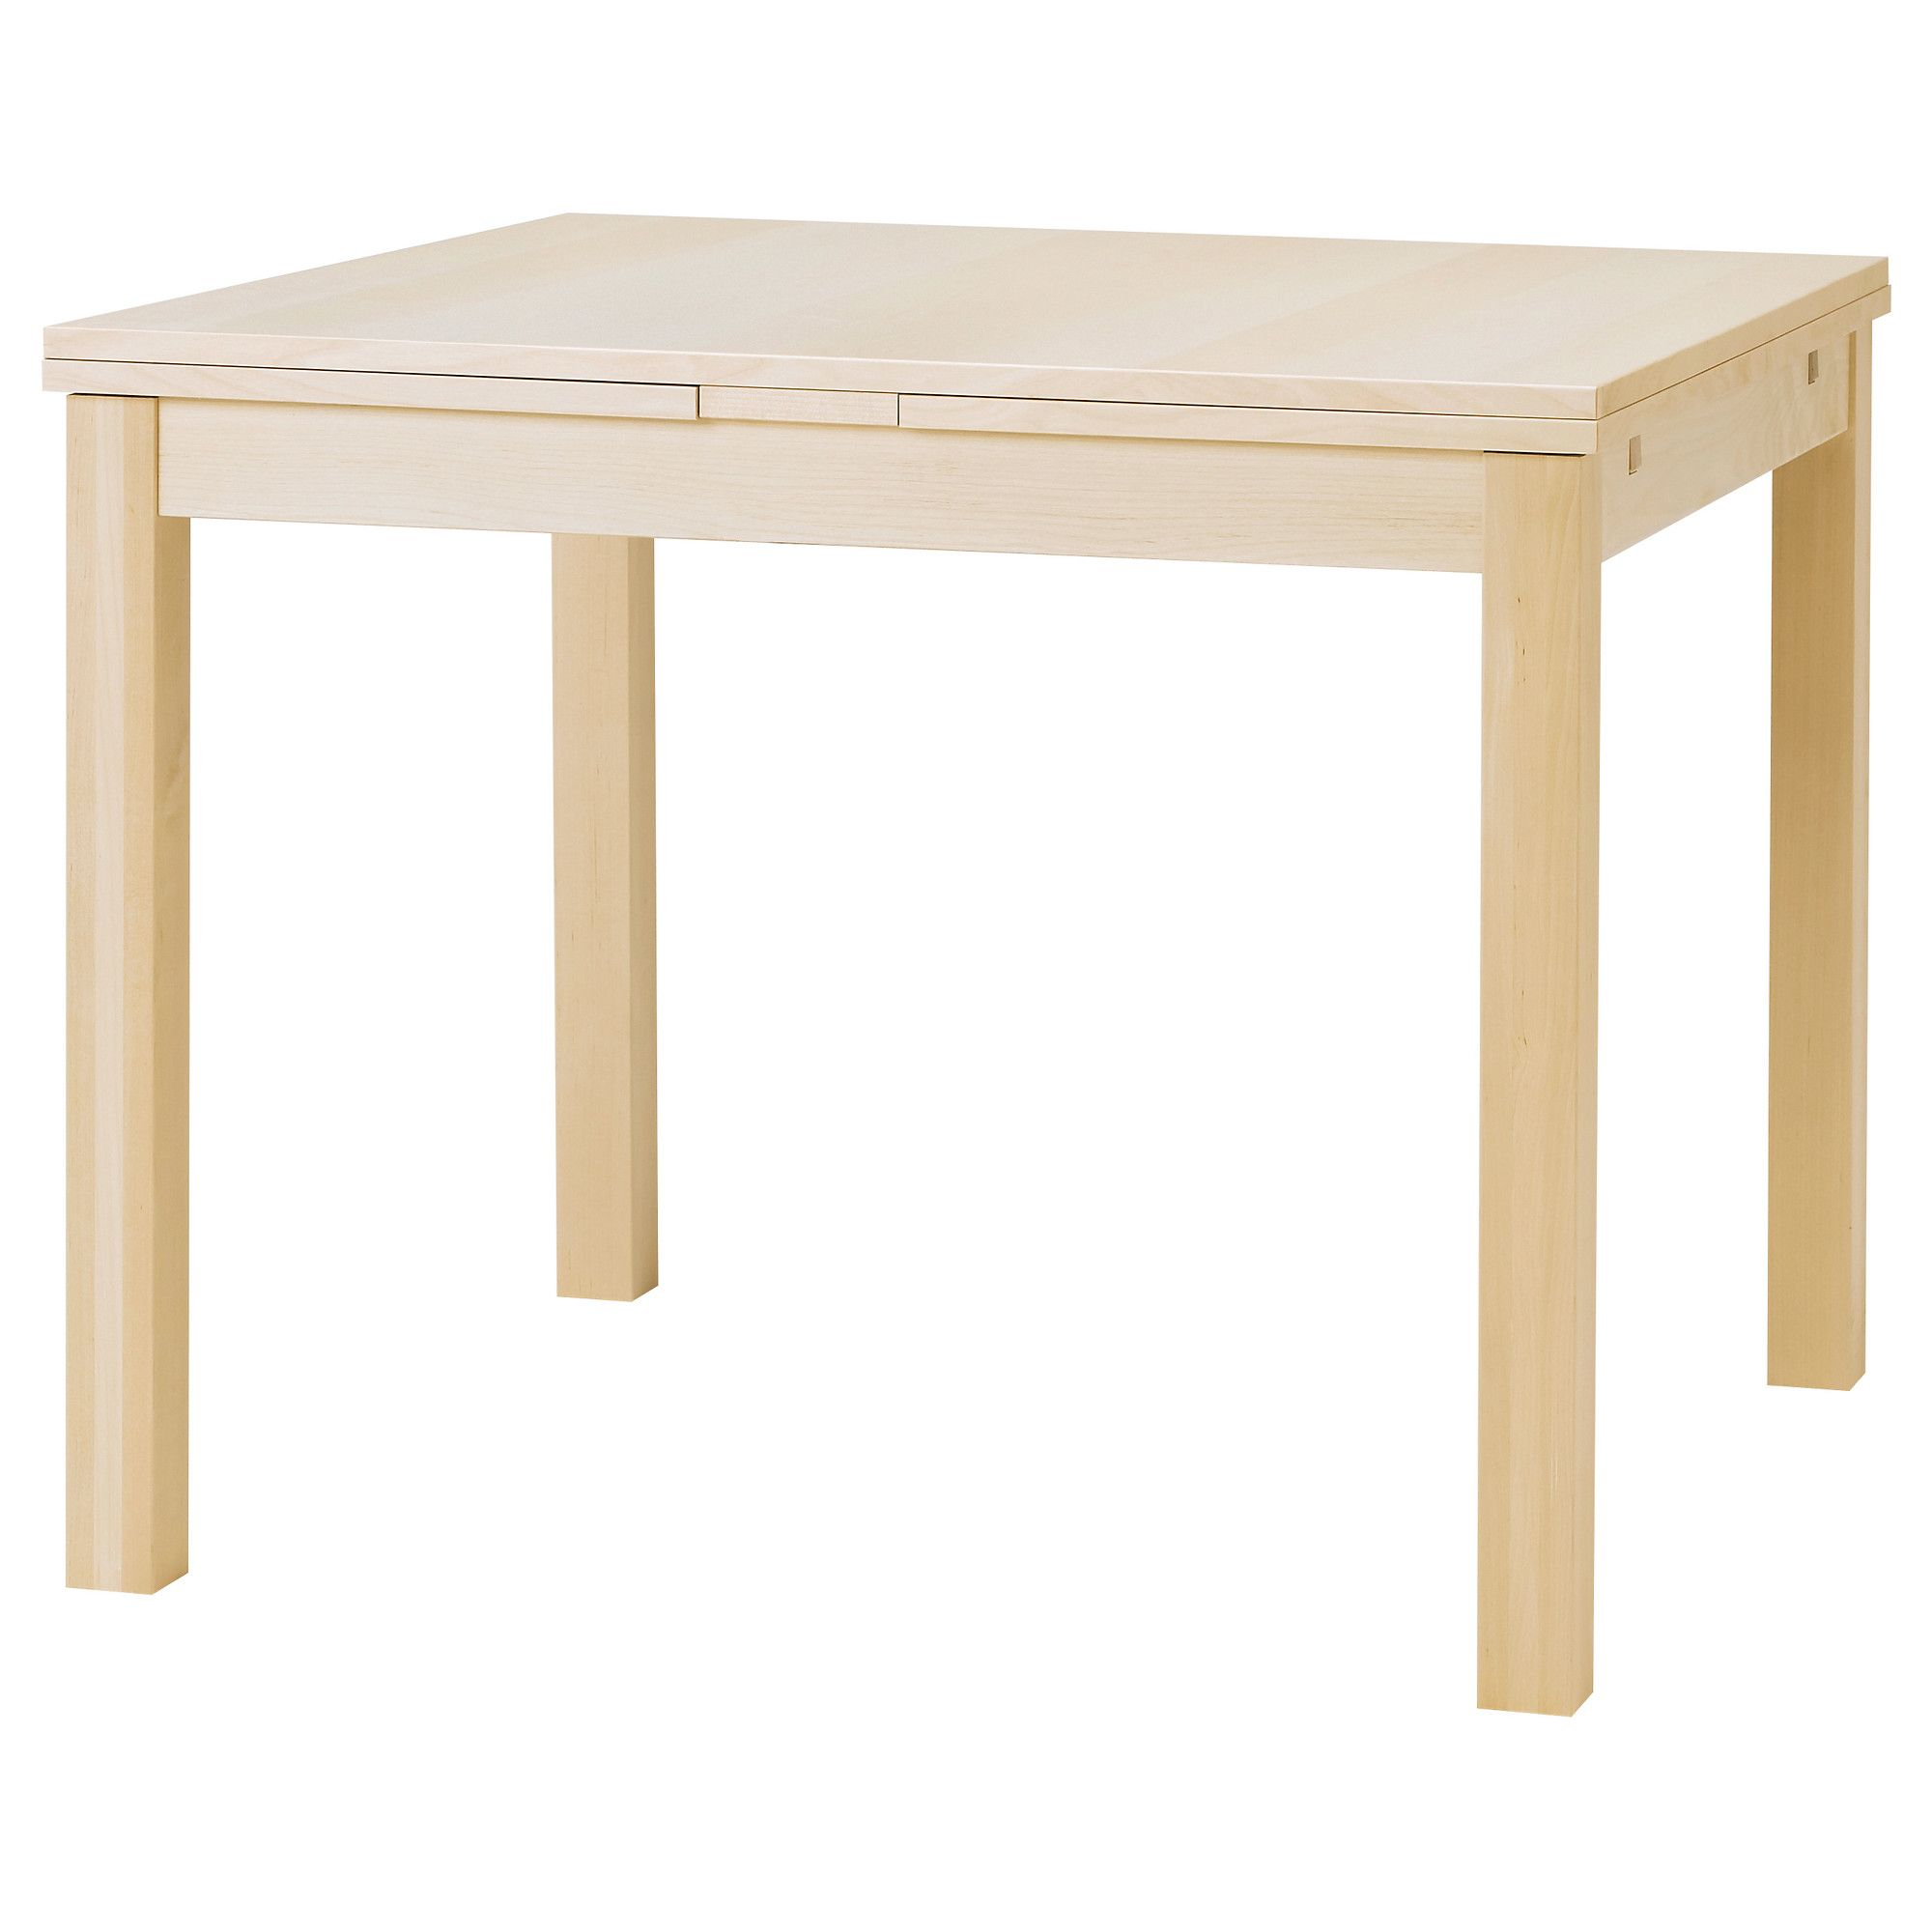 Esstisch Ikea Bjursta Us Furniture And Home Furnishings Ikea Dining Table